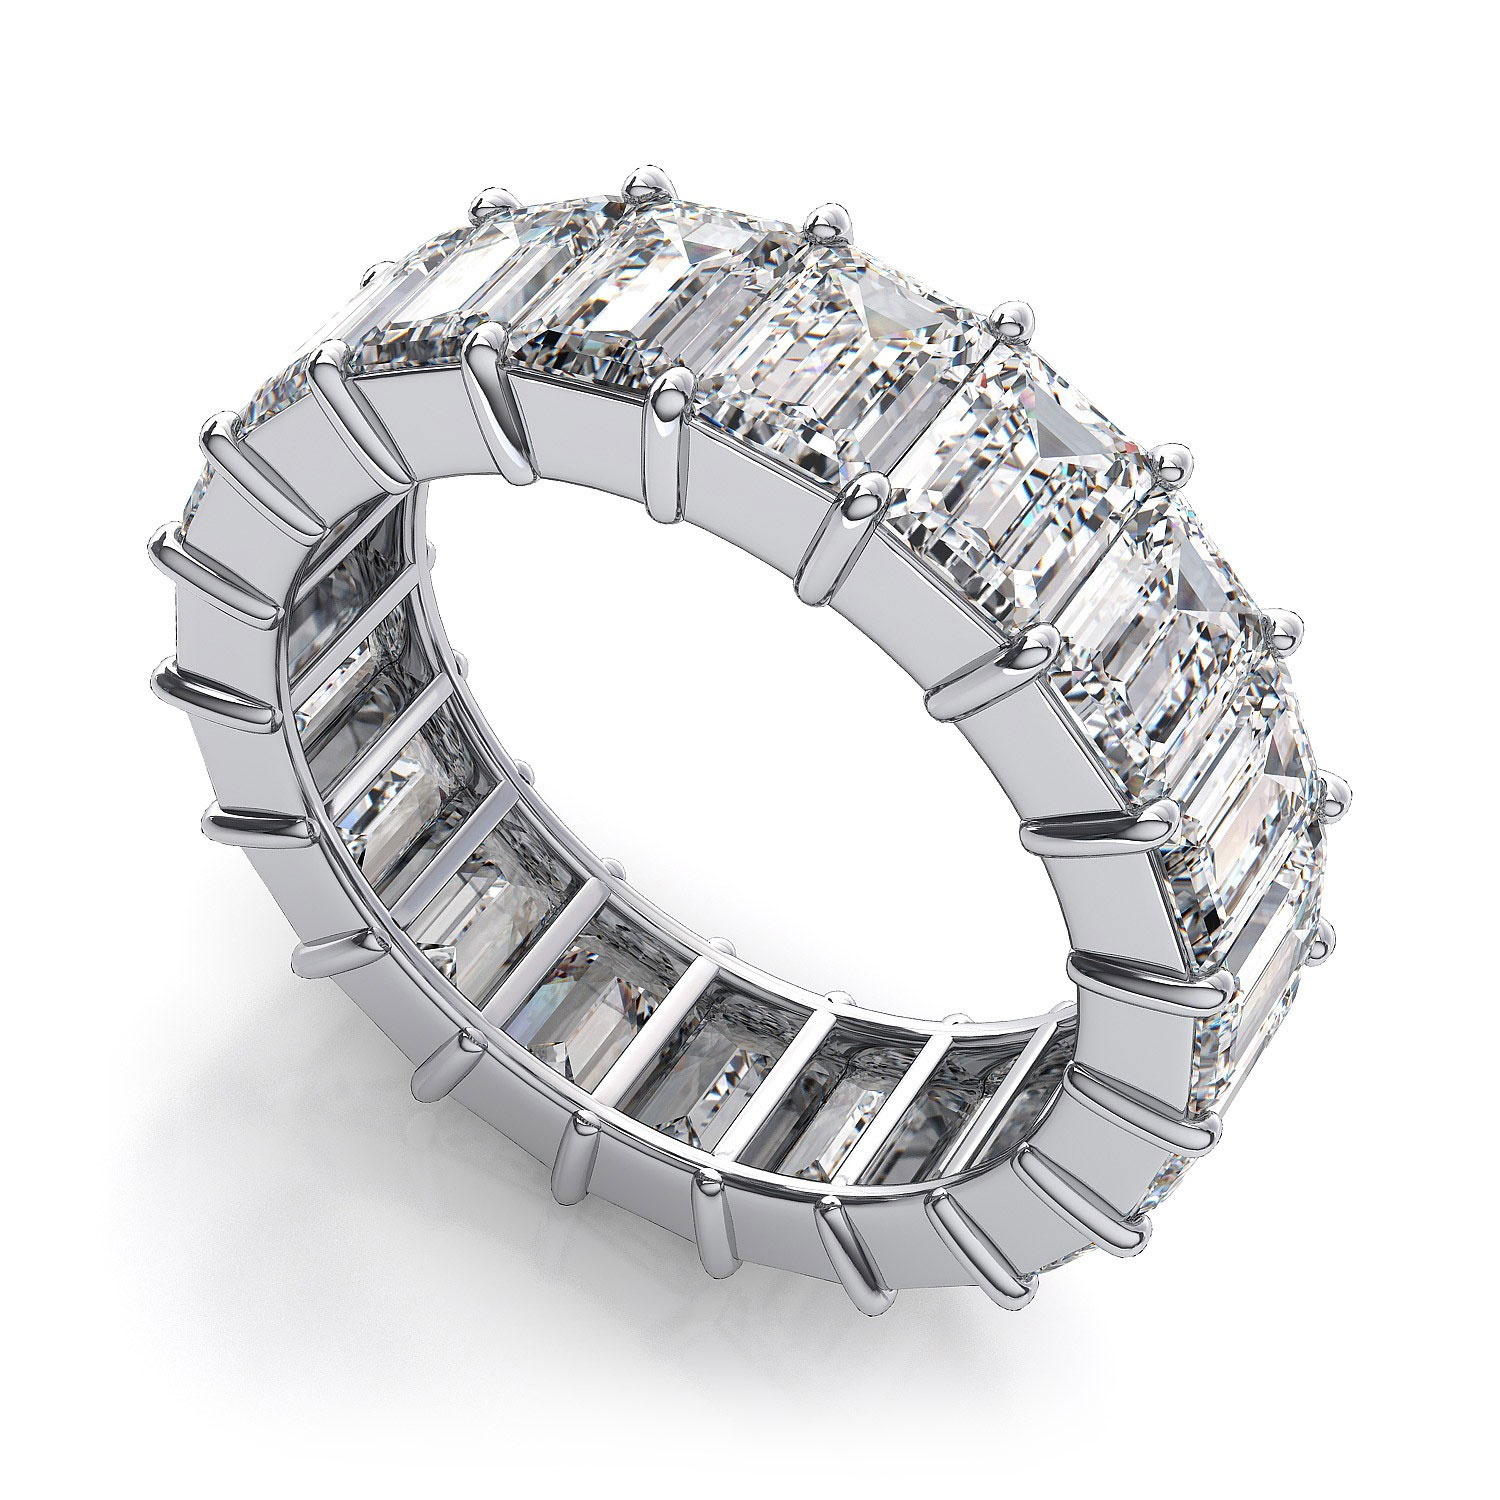 diamond anniversary products set ring channel stackable faux zirconia wedding carat promise band sparkles beloved bridal cz bands eternity classic hillary fashion cubic lustrous